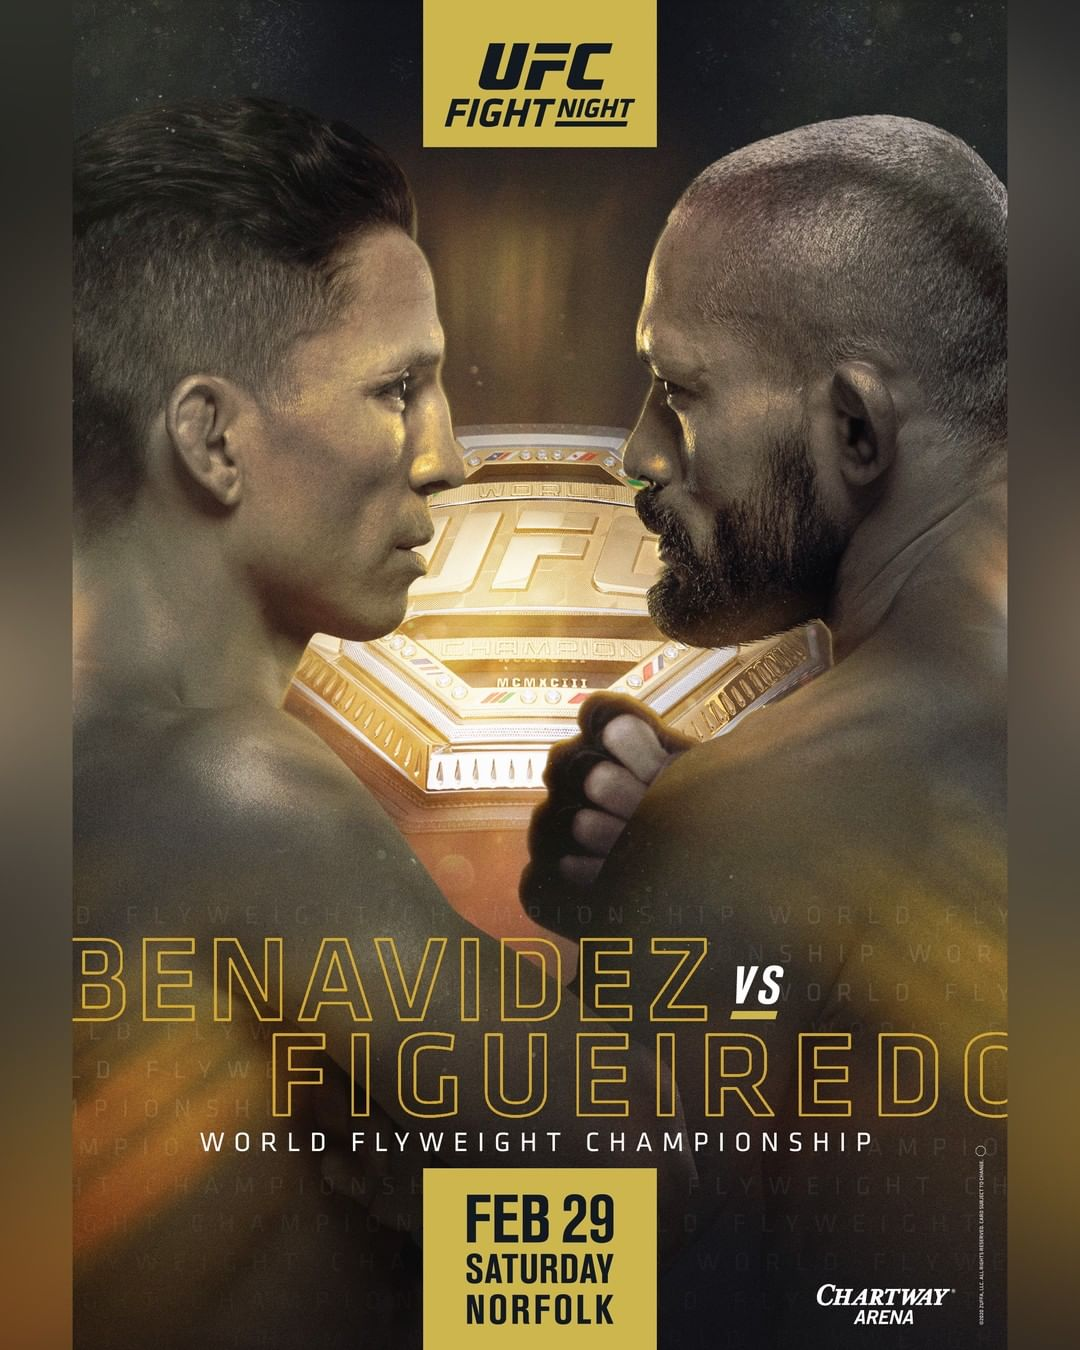 new UFC Fight Night 169 poster